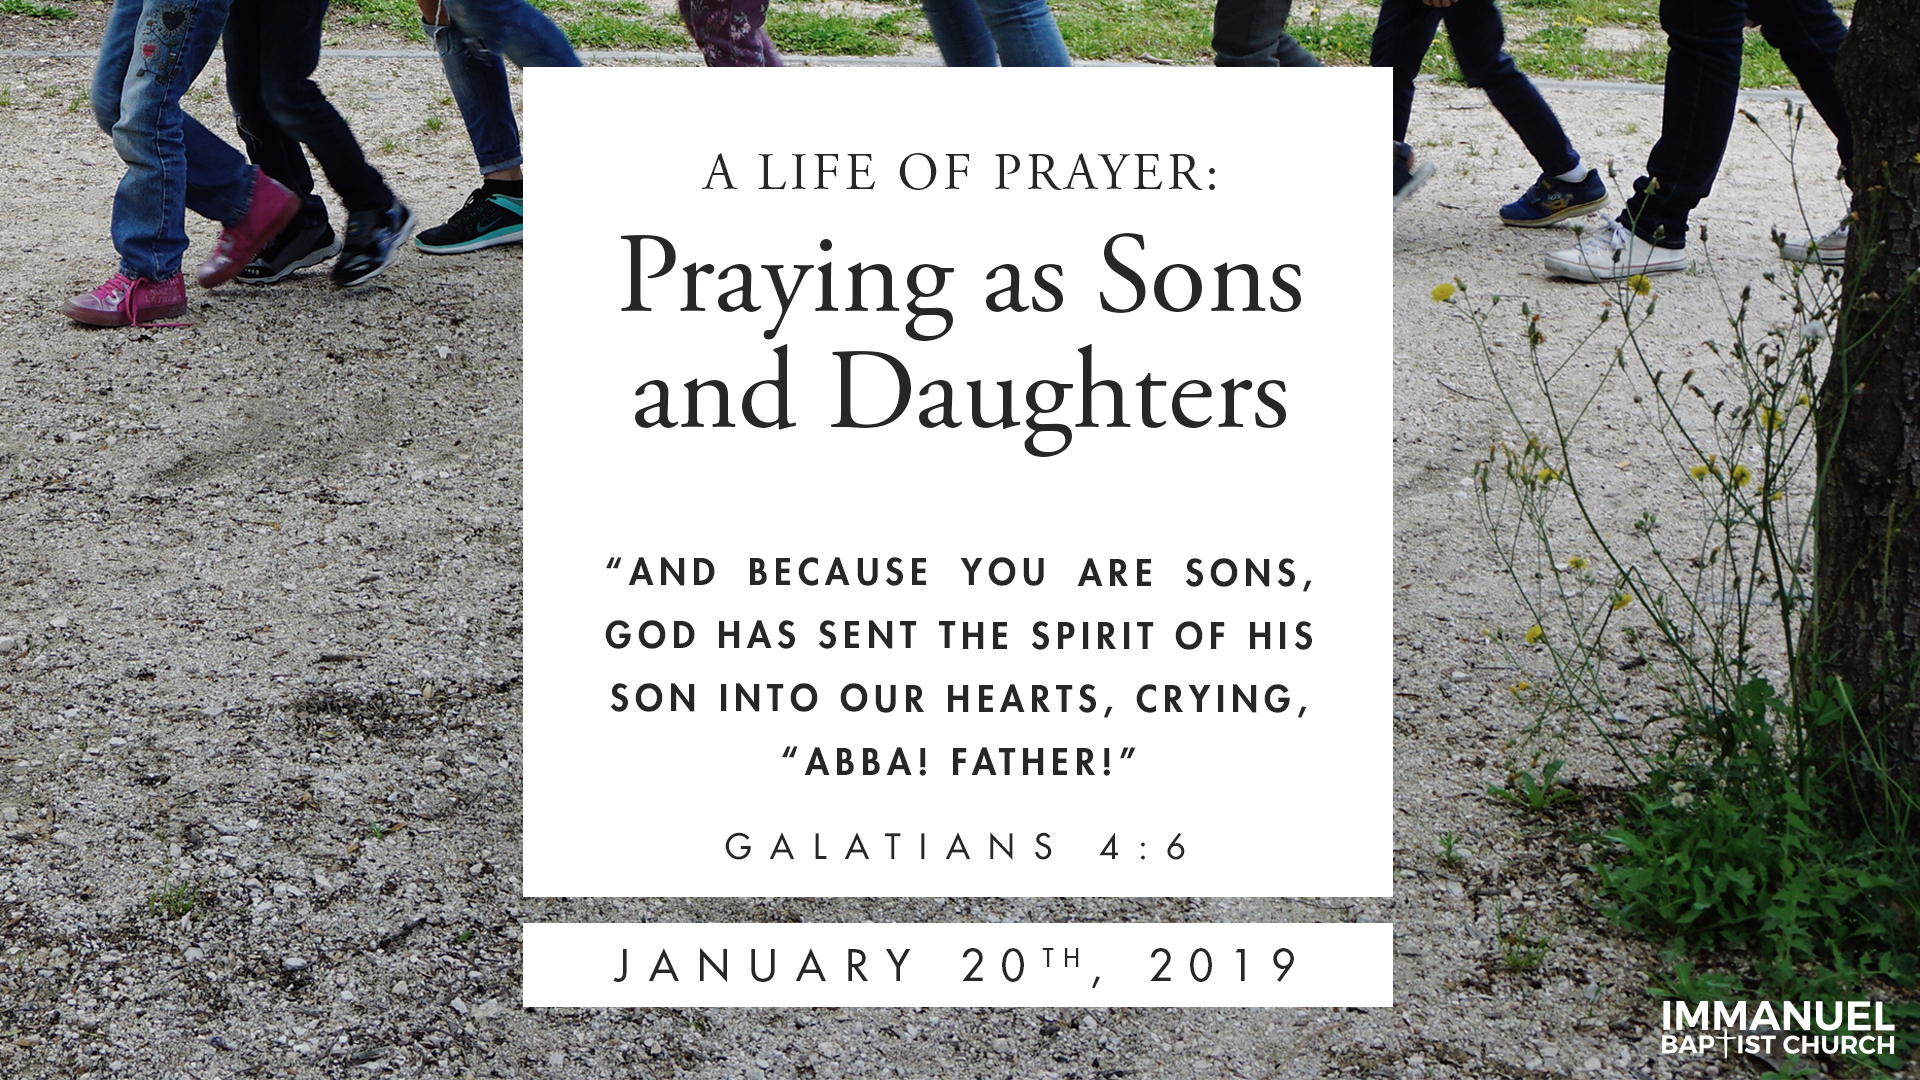 Praying like Sons and Daughters Image